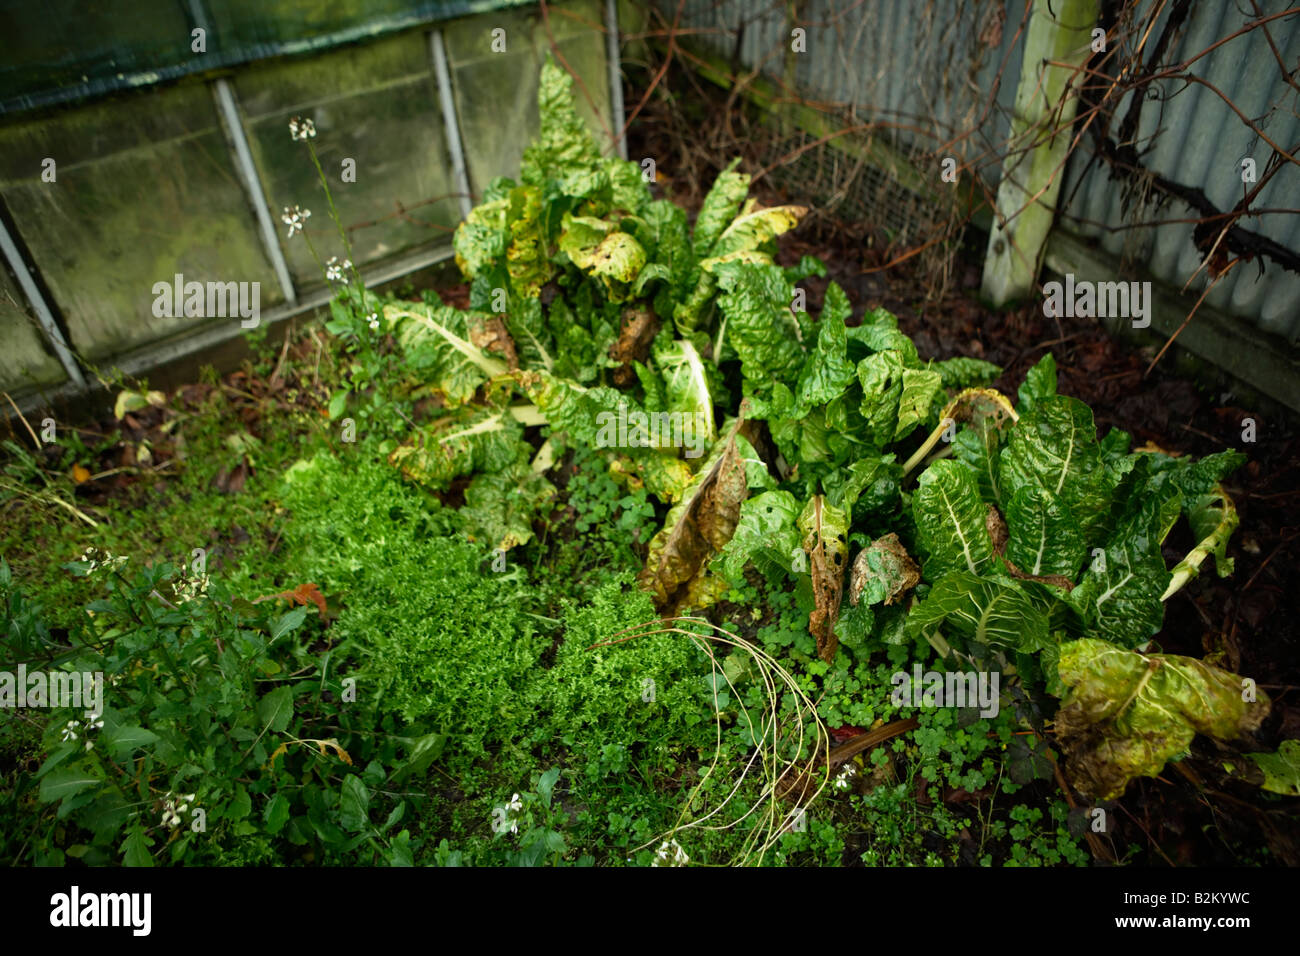 Neglected glasshouse and garden, swiss chard and lettuce - Stock Image